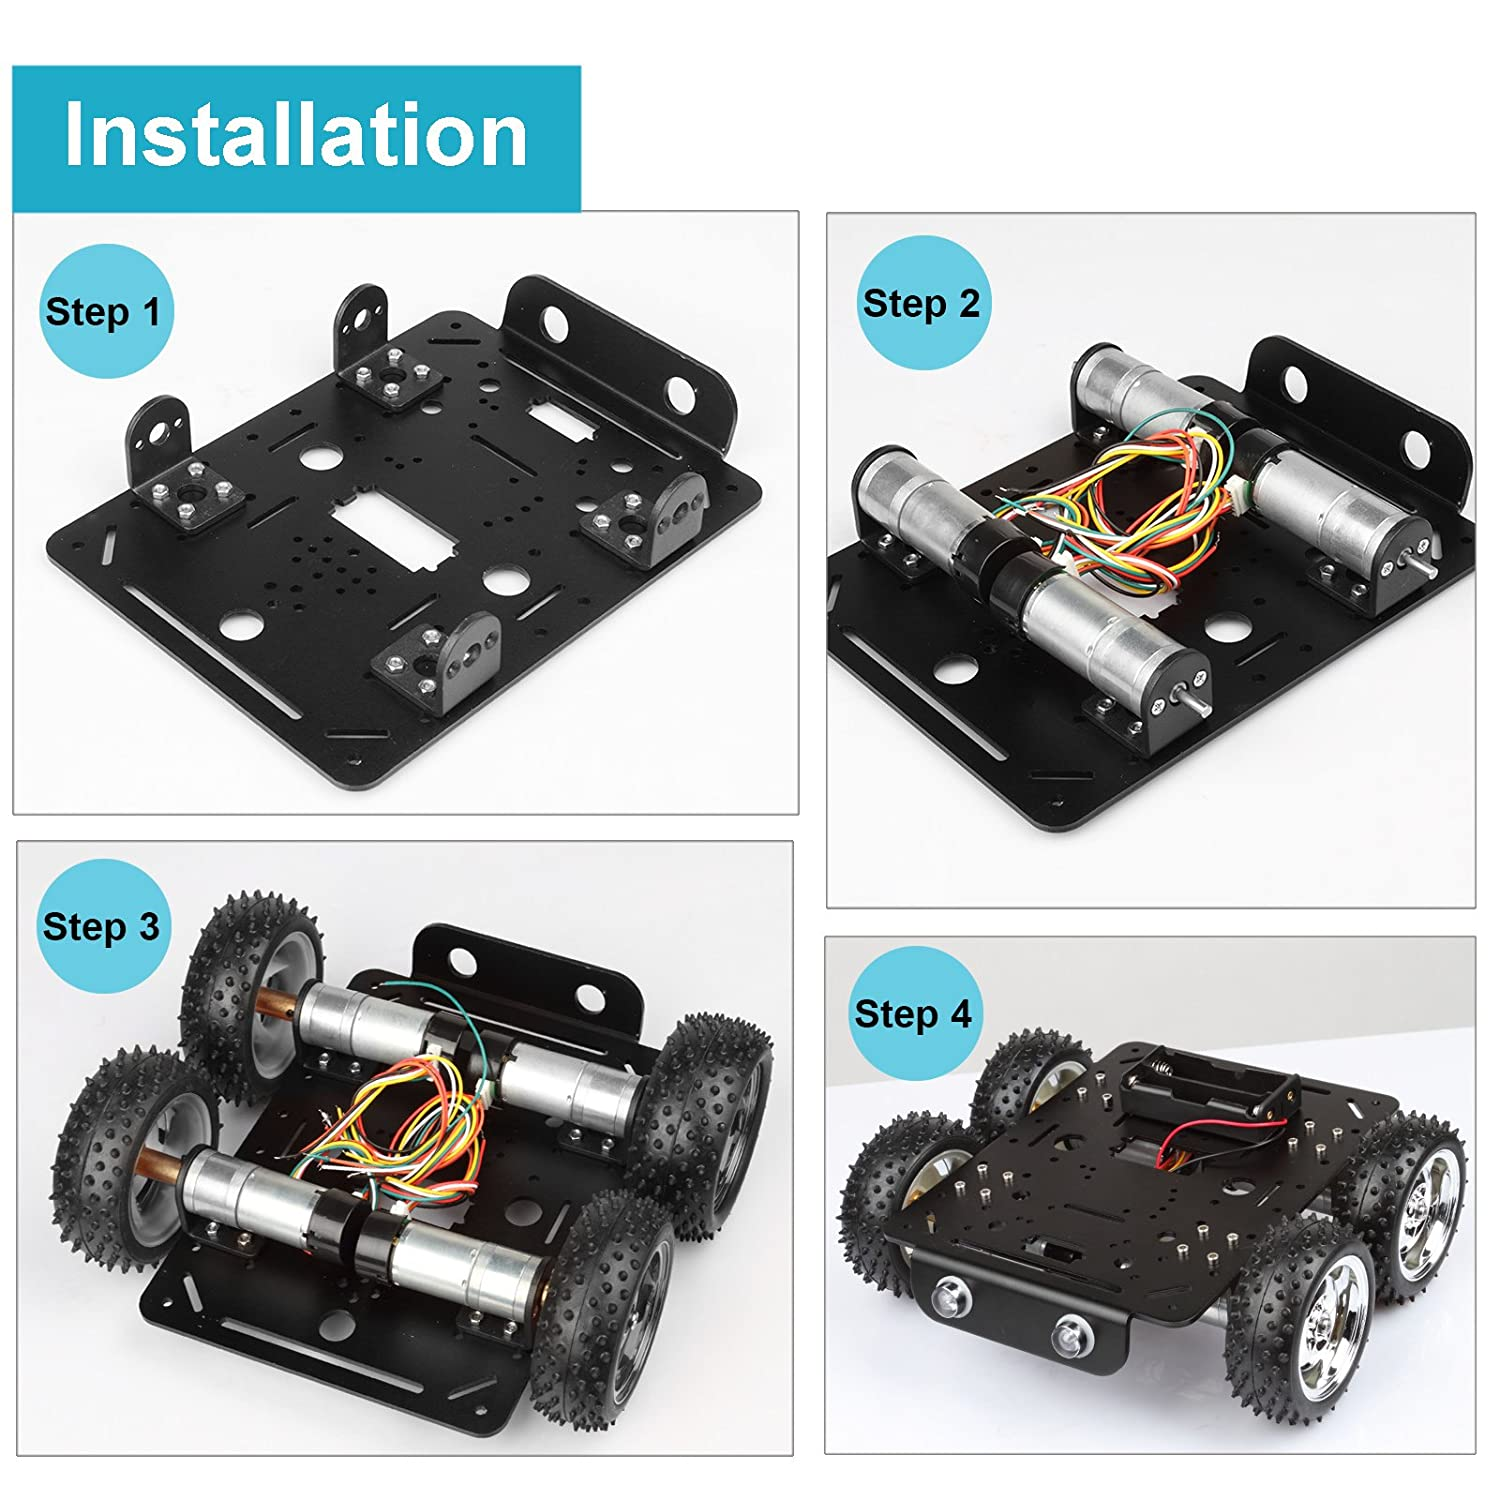 Off-Road Rubber Tire 3.1 for Arduino Raspberry Pi DIY STEM Education 4 pcs DC 9V Hall speed Motor Aluminum Alloy Chassis 9.0x8.2x3.5inch 4WD Obstacles Crossing Robot Smart Car Chassis Kit